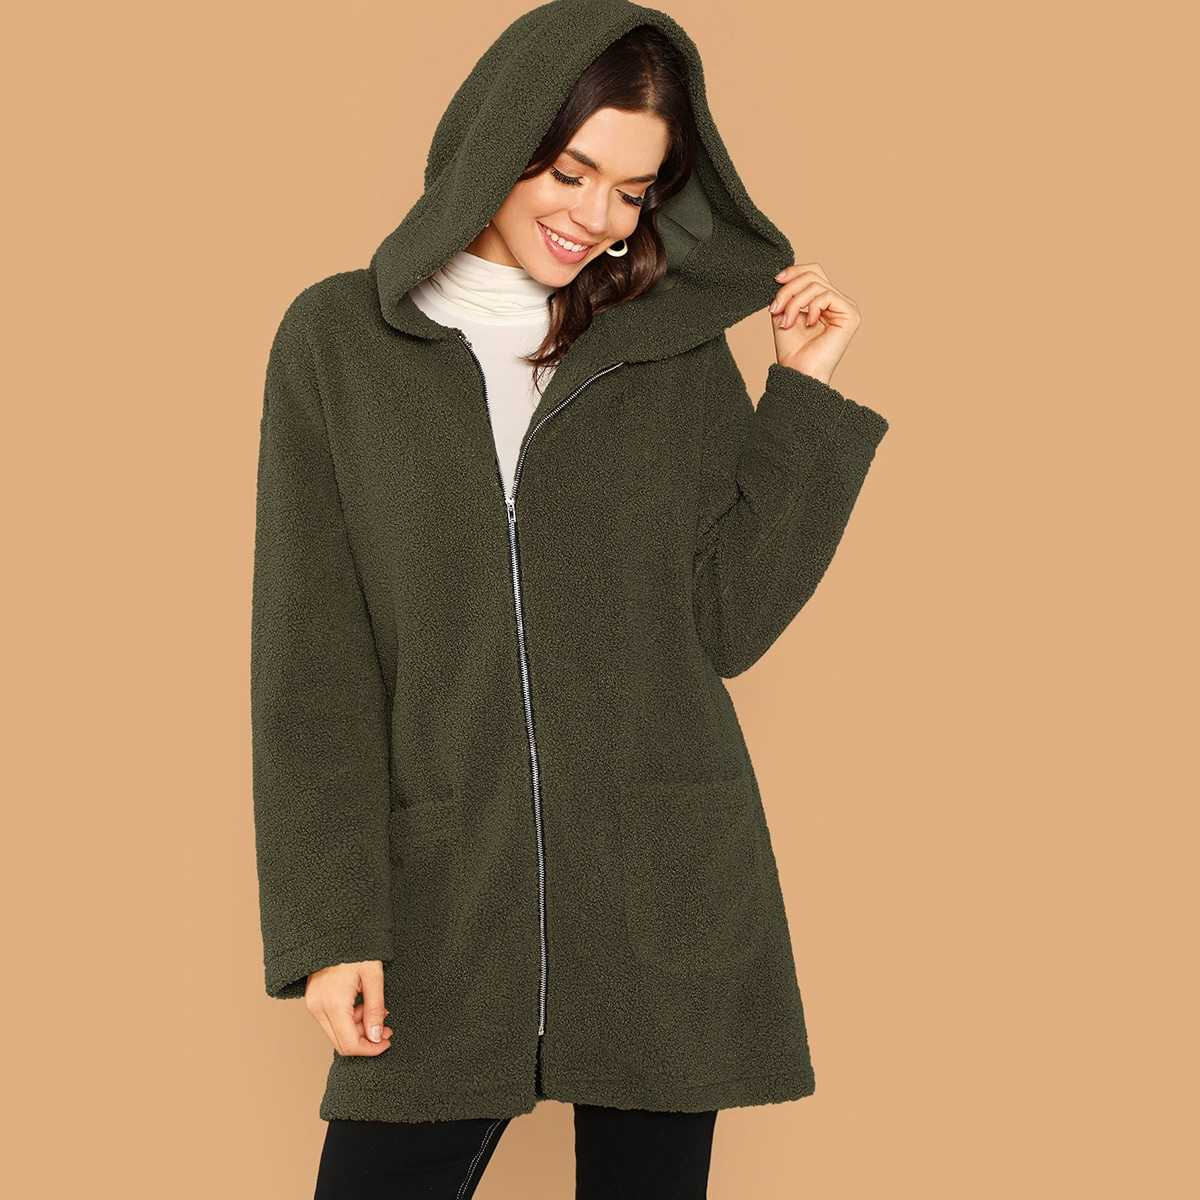 Pocket Front Zip Up Hooded Teddy Coat in Army Green by ROMWE on GOOFASH